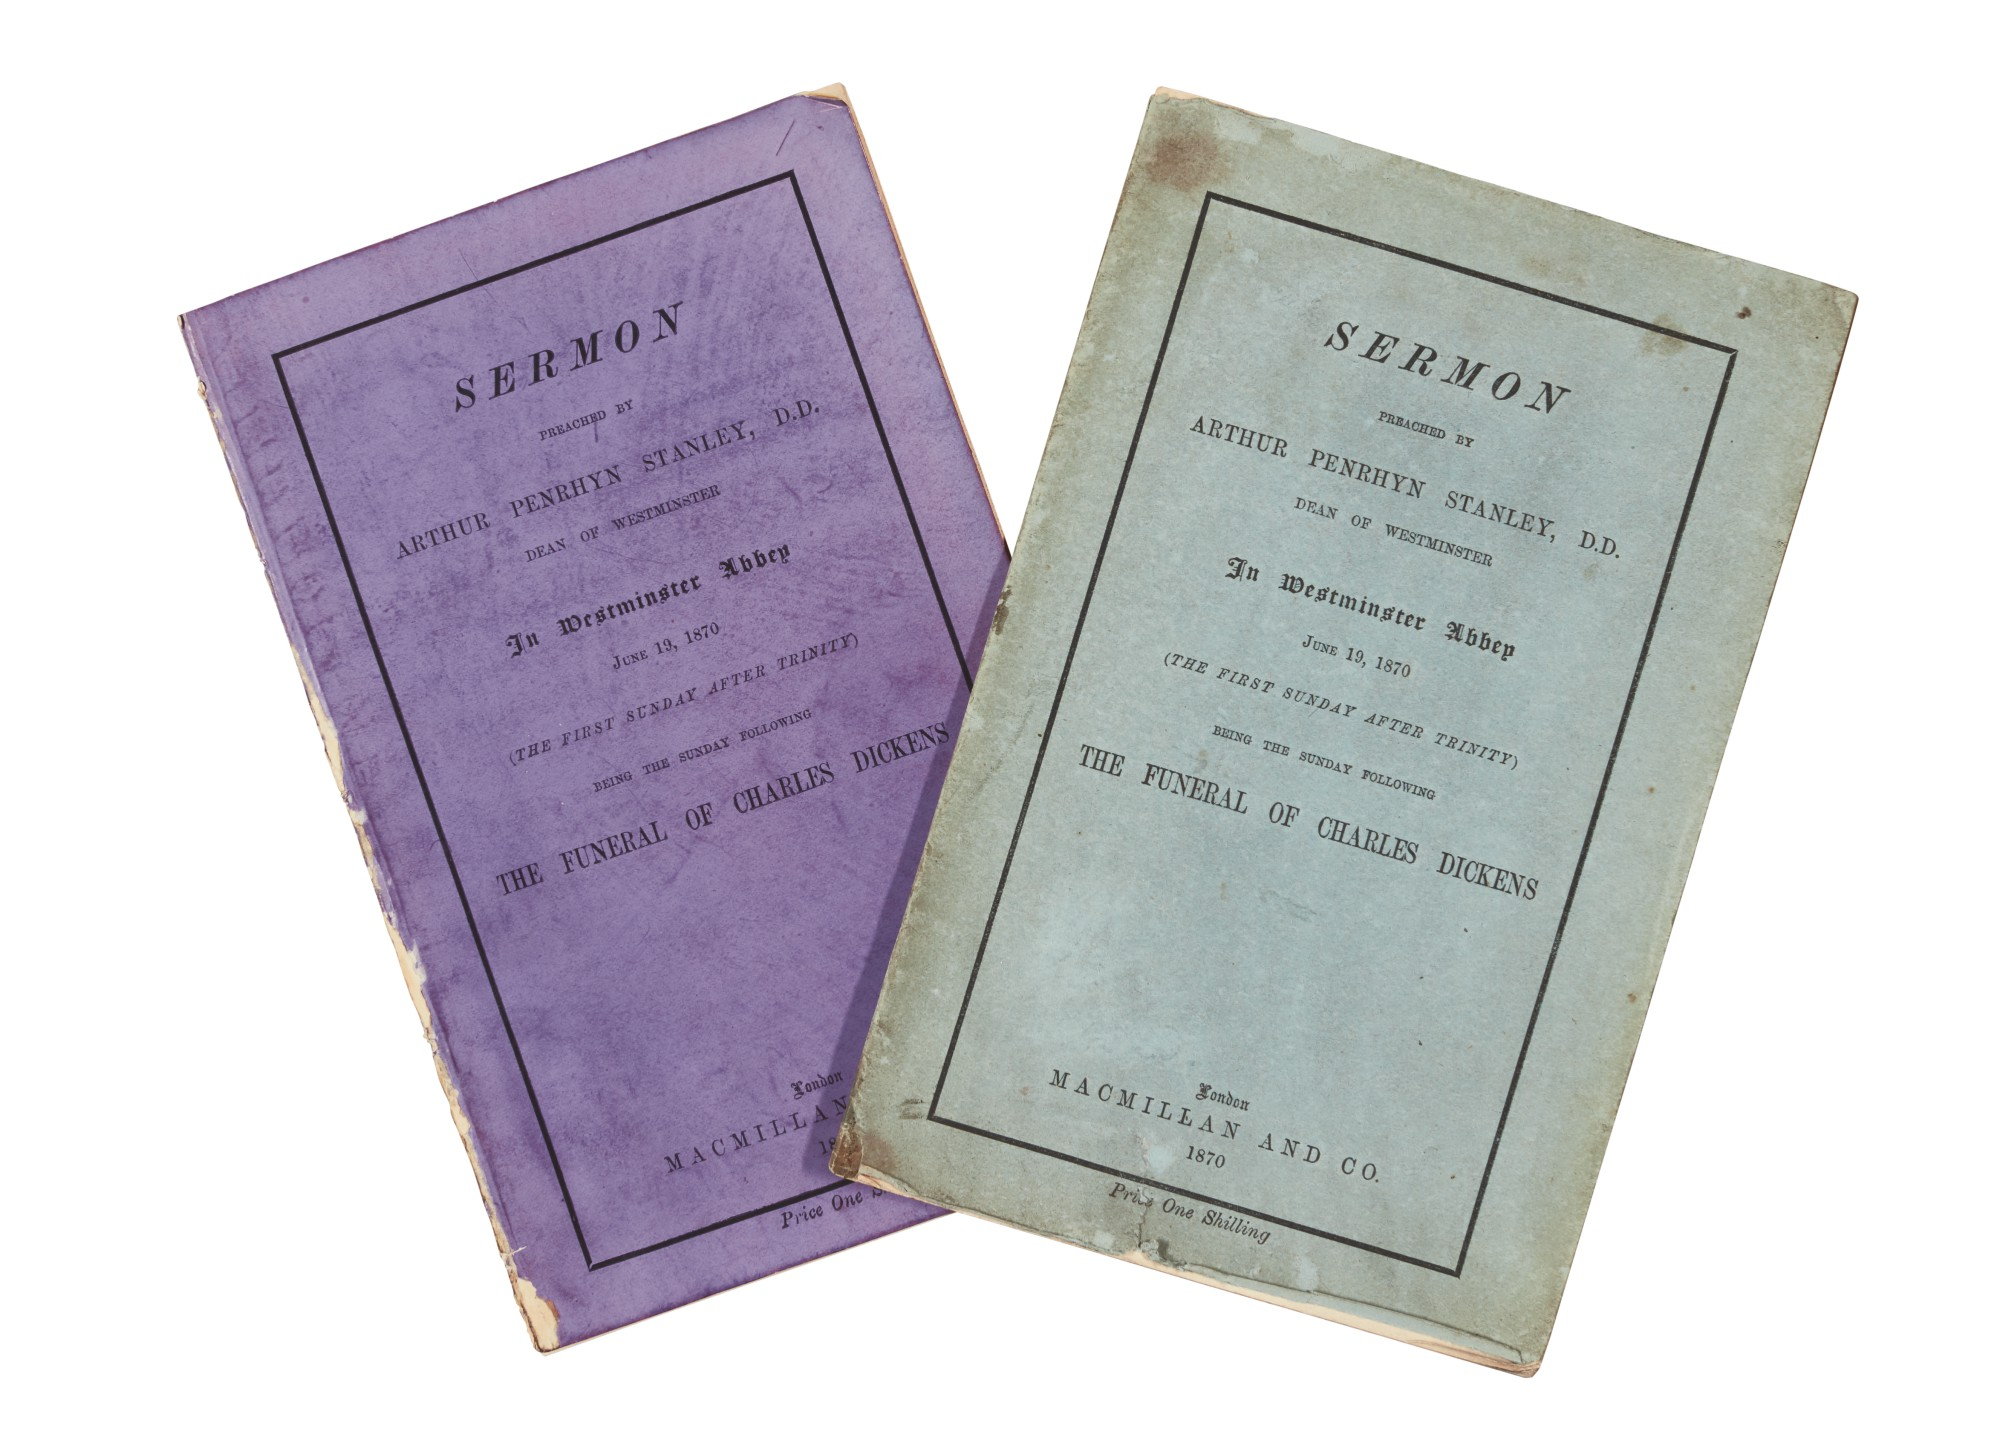 Stanley, Sermon preached... in Westminster Abbey... following the funeral of Charles Dickens, 1870, 2 copies